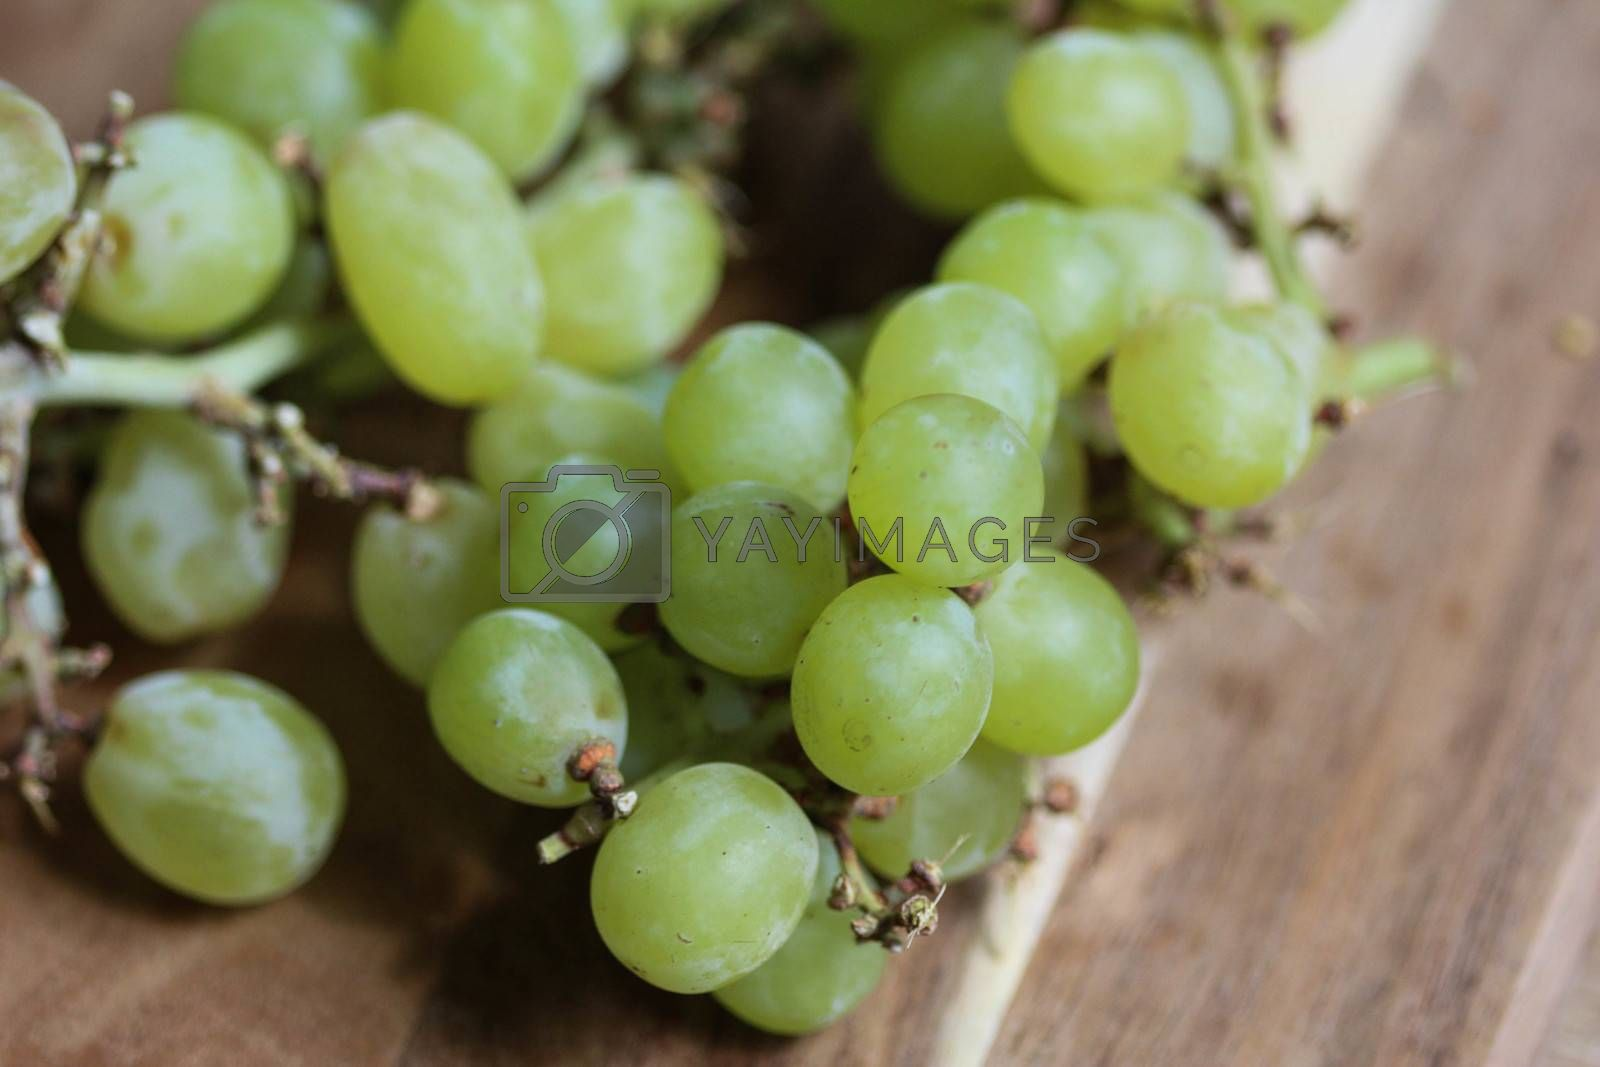 Royalty free image of bunch of fresh White grapes on wooden background by michaelmeijer